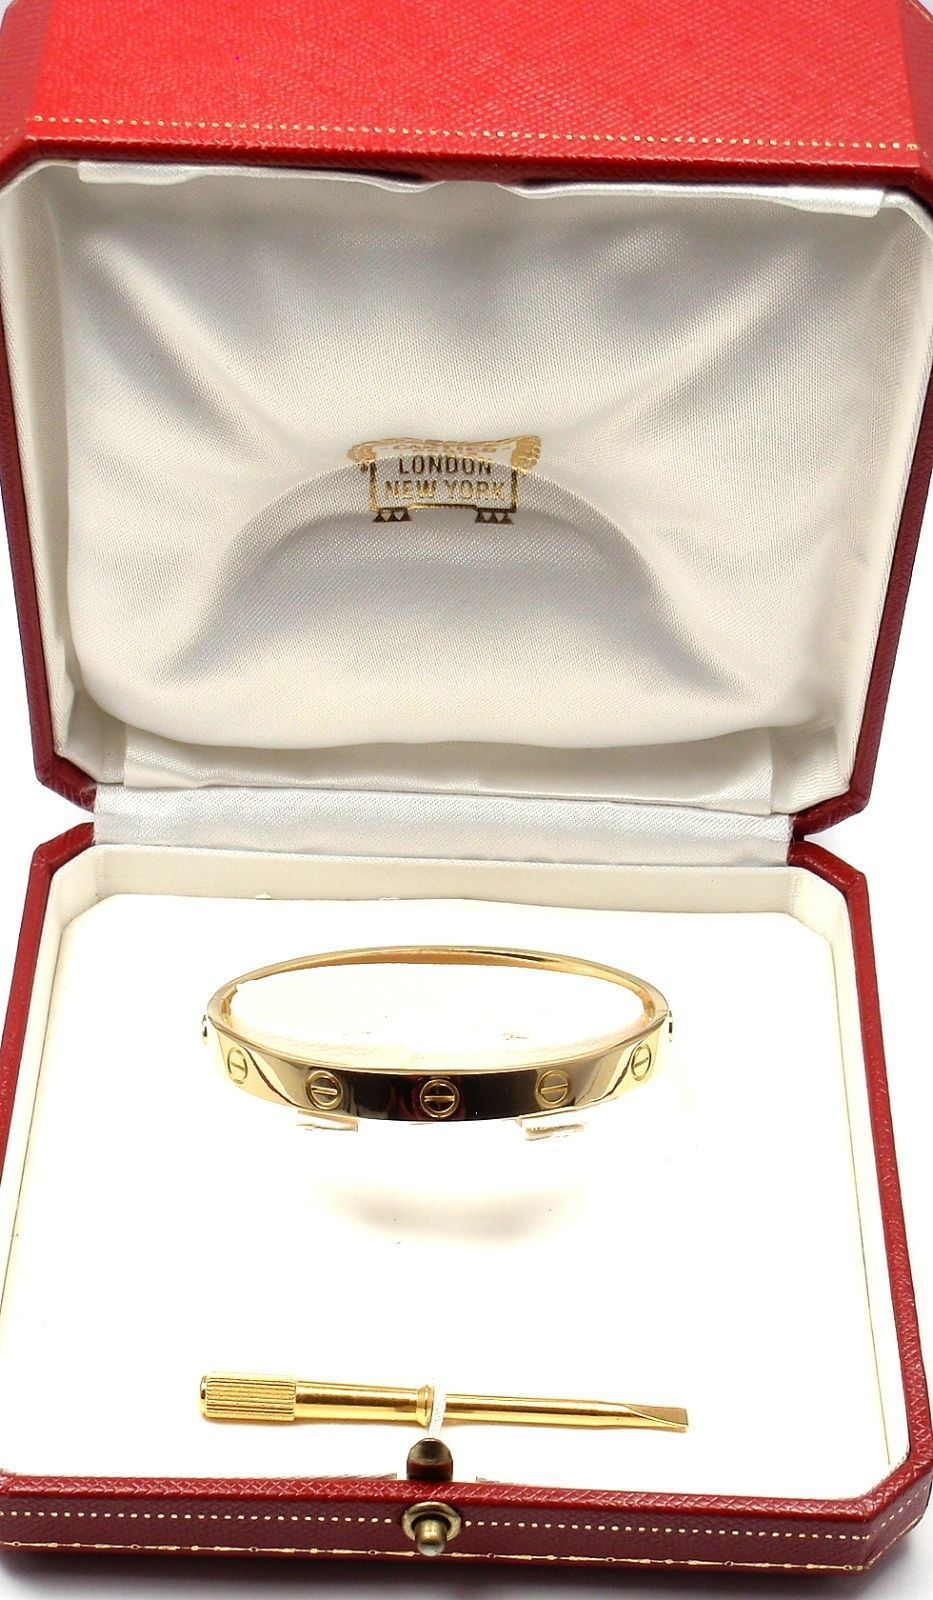 18k Yellow Gold Love Bangle Bracelet By Cartier Size 18 This Beautiful